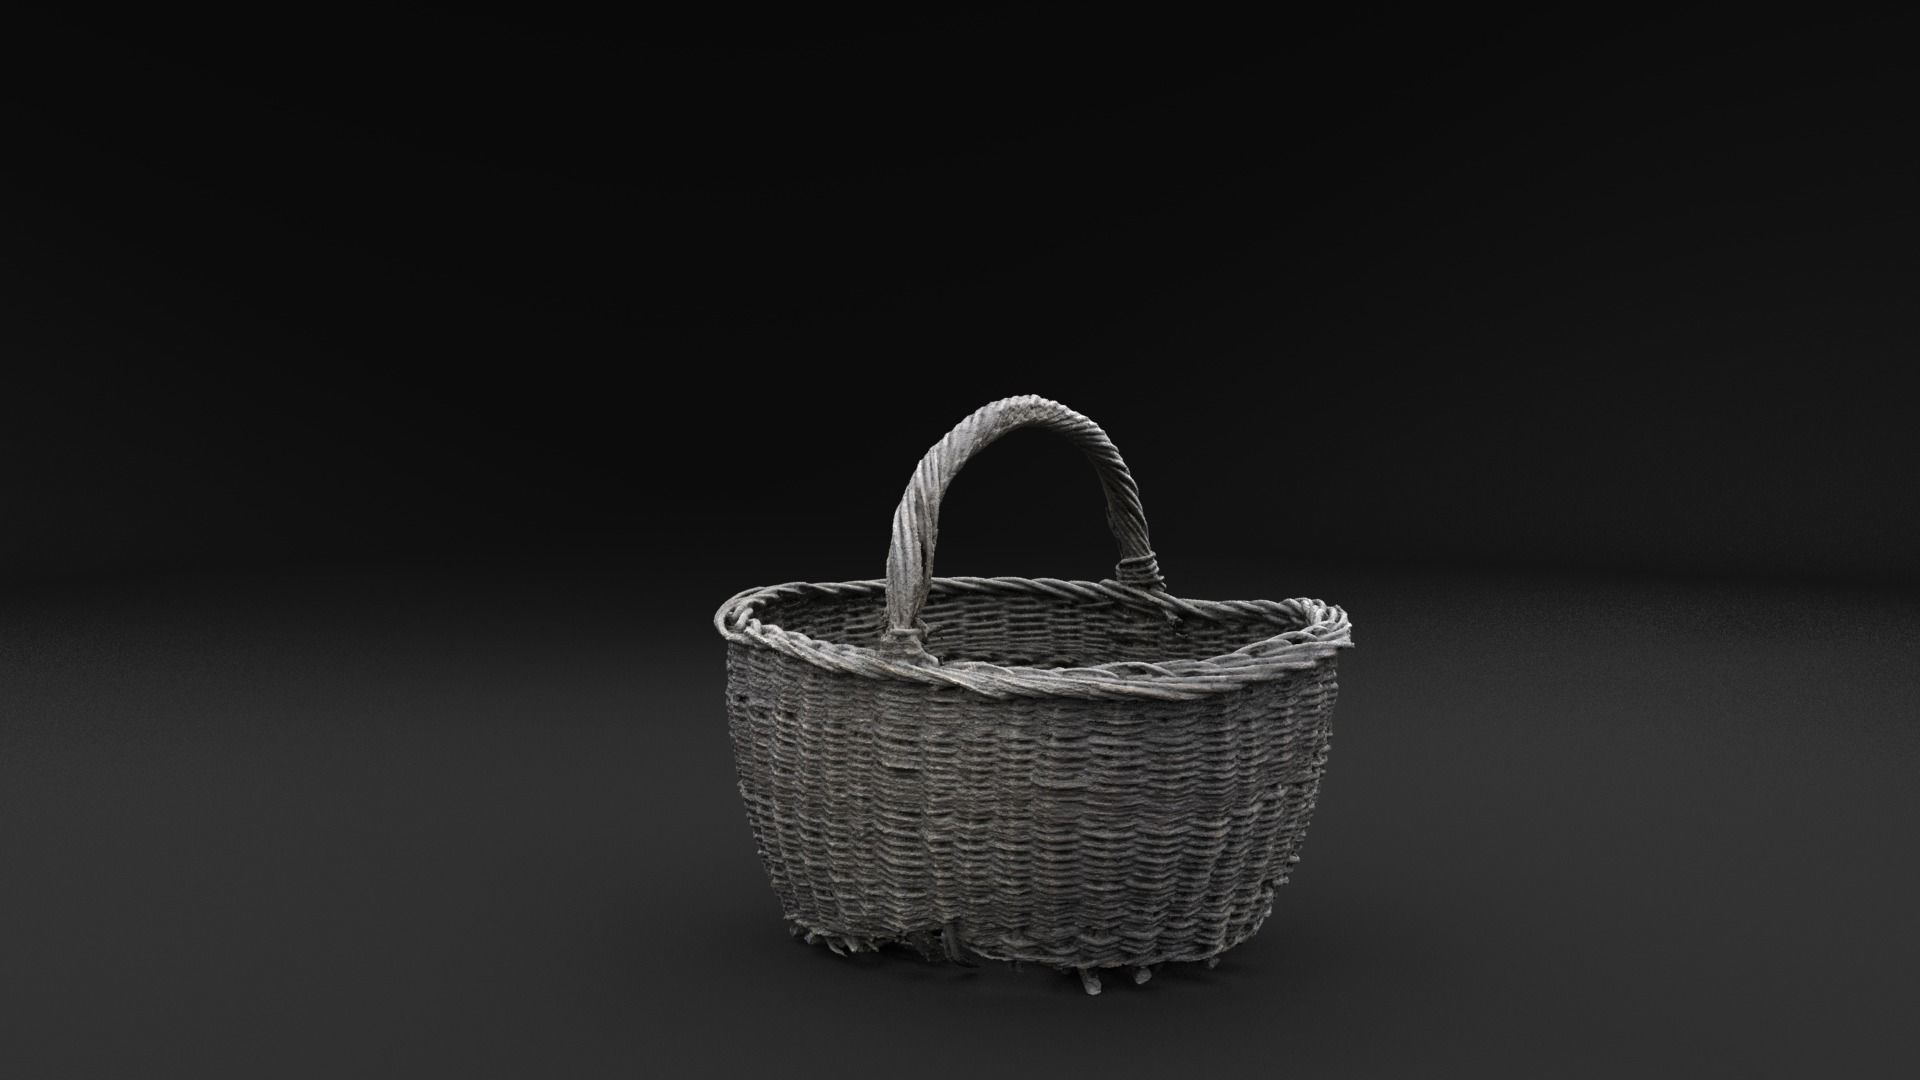 Scanned Old Basket RAW SCAN